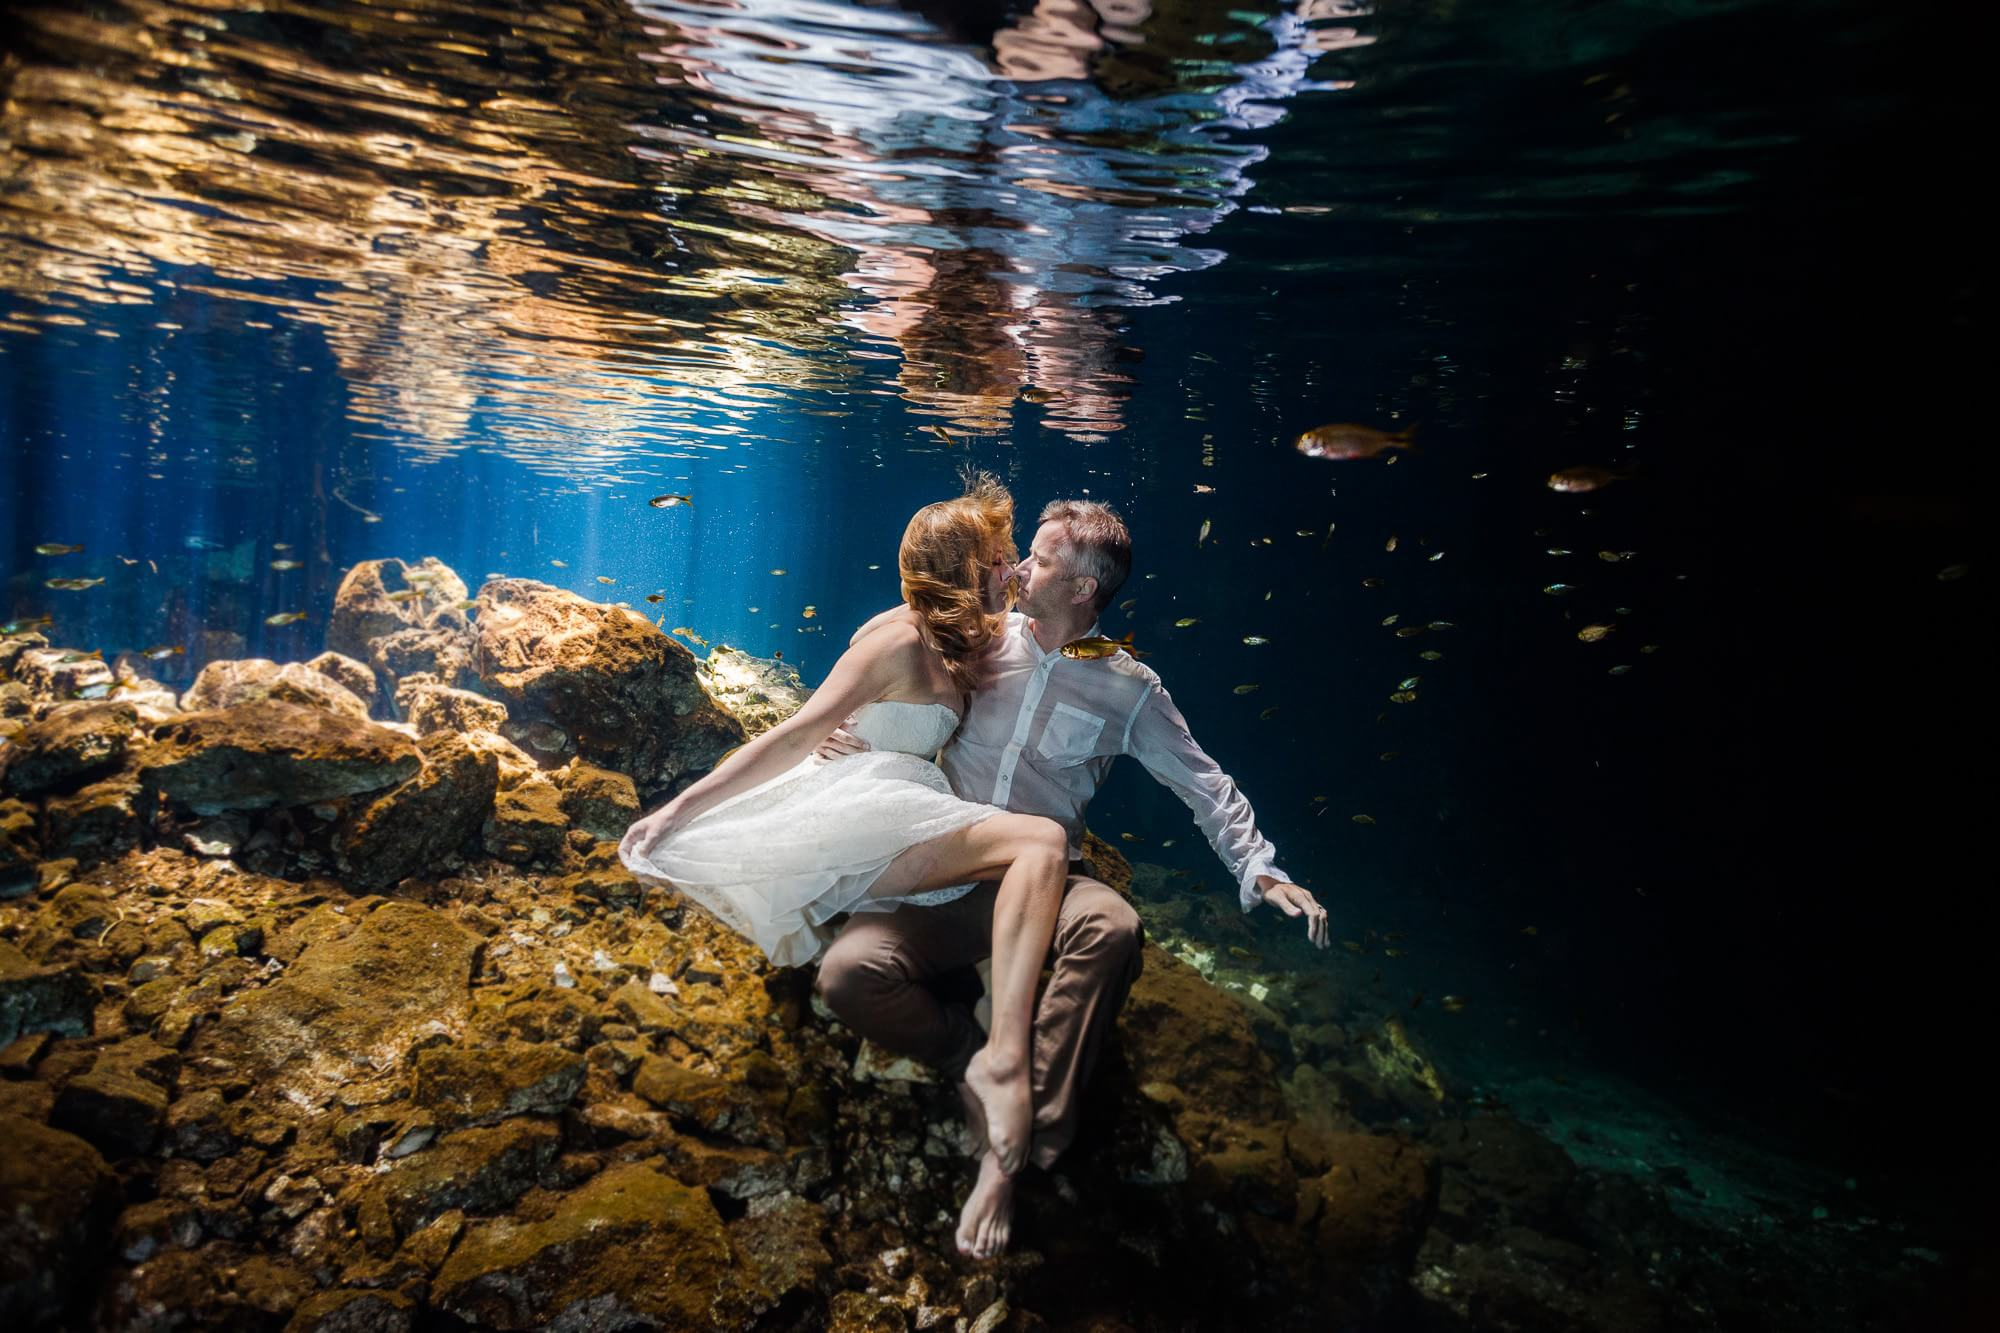 Underwater trash the dress in Mexico